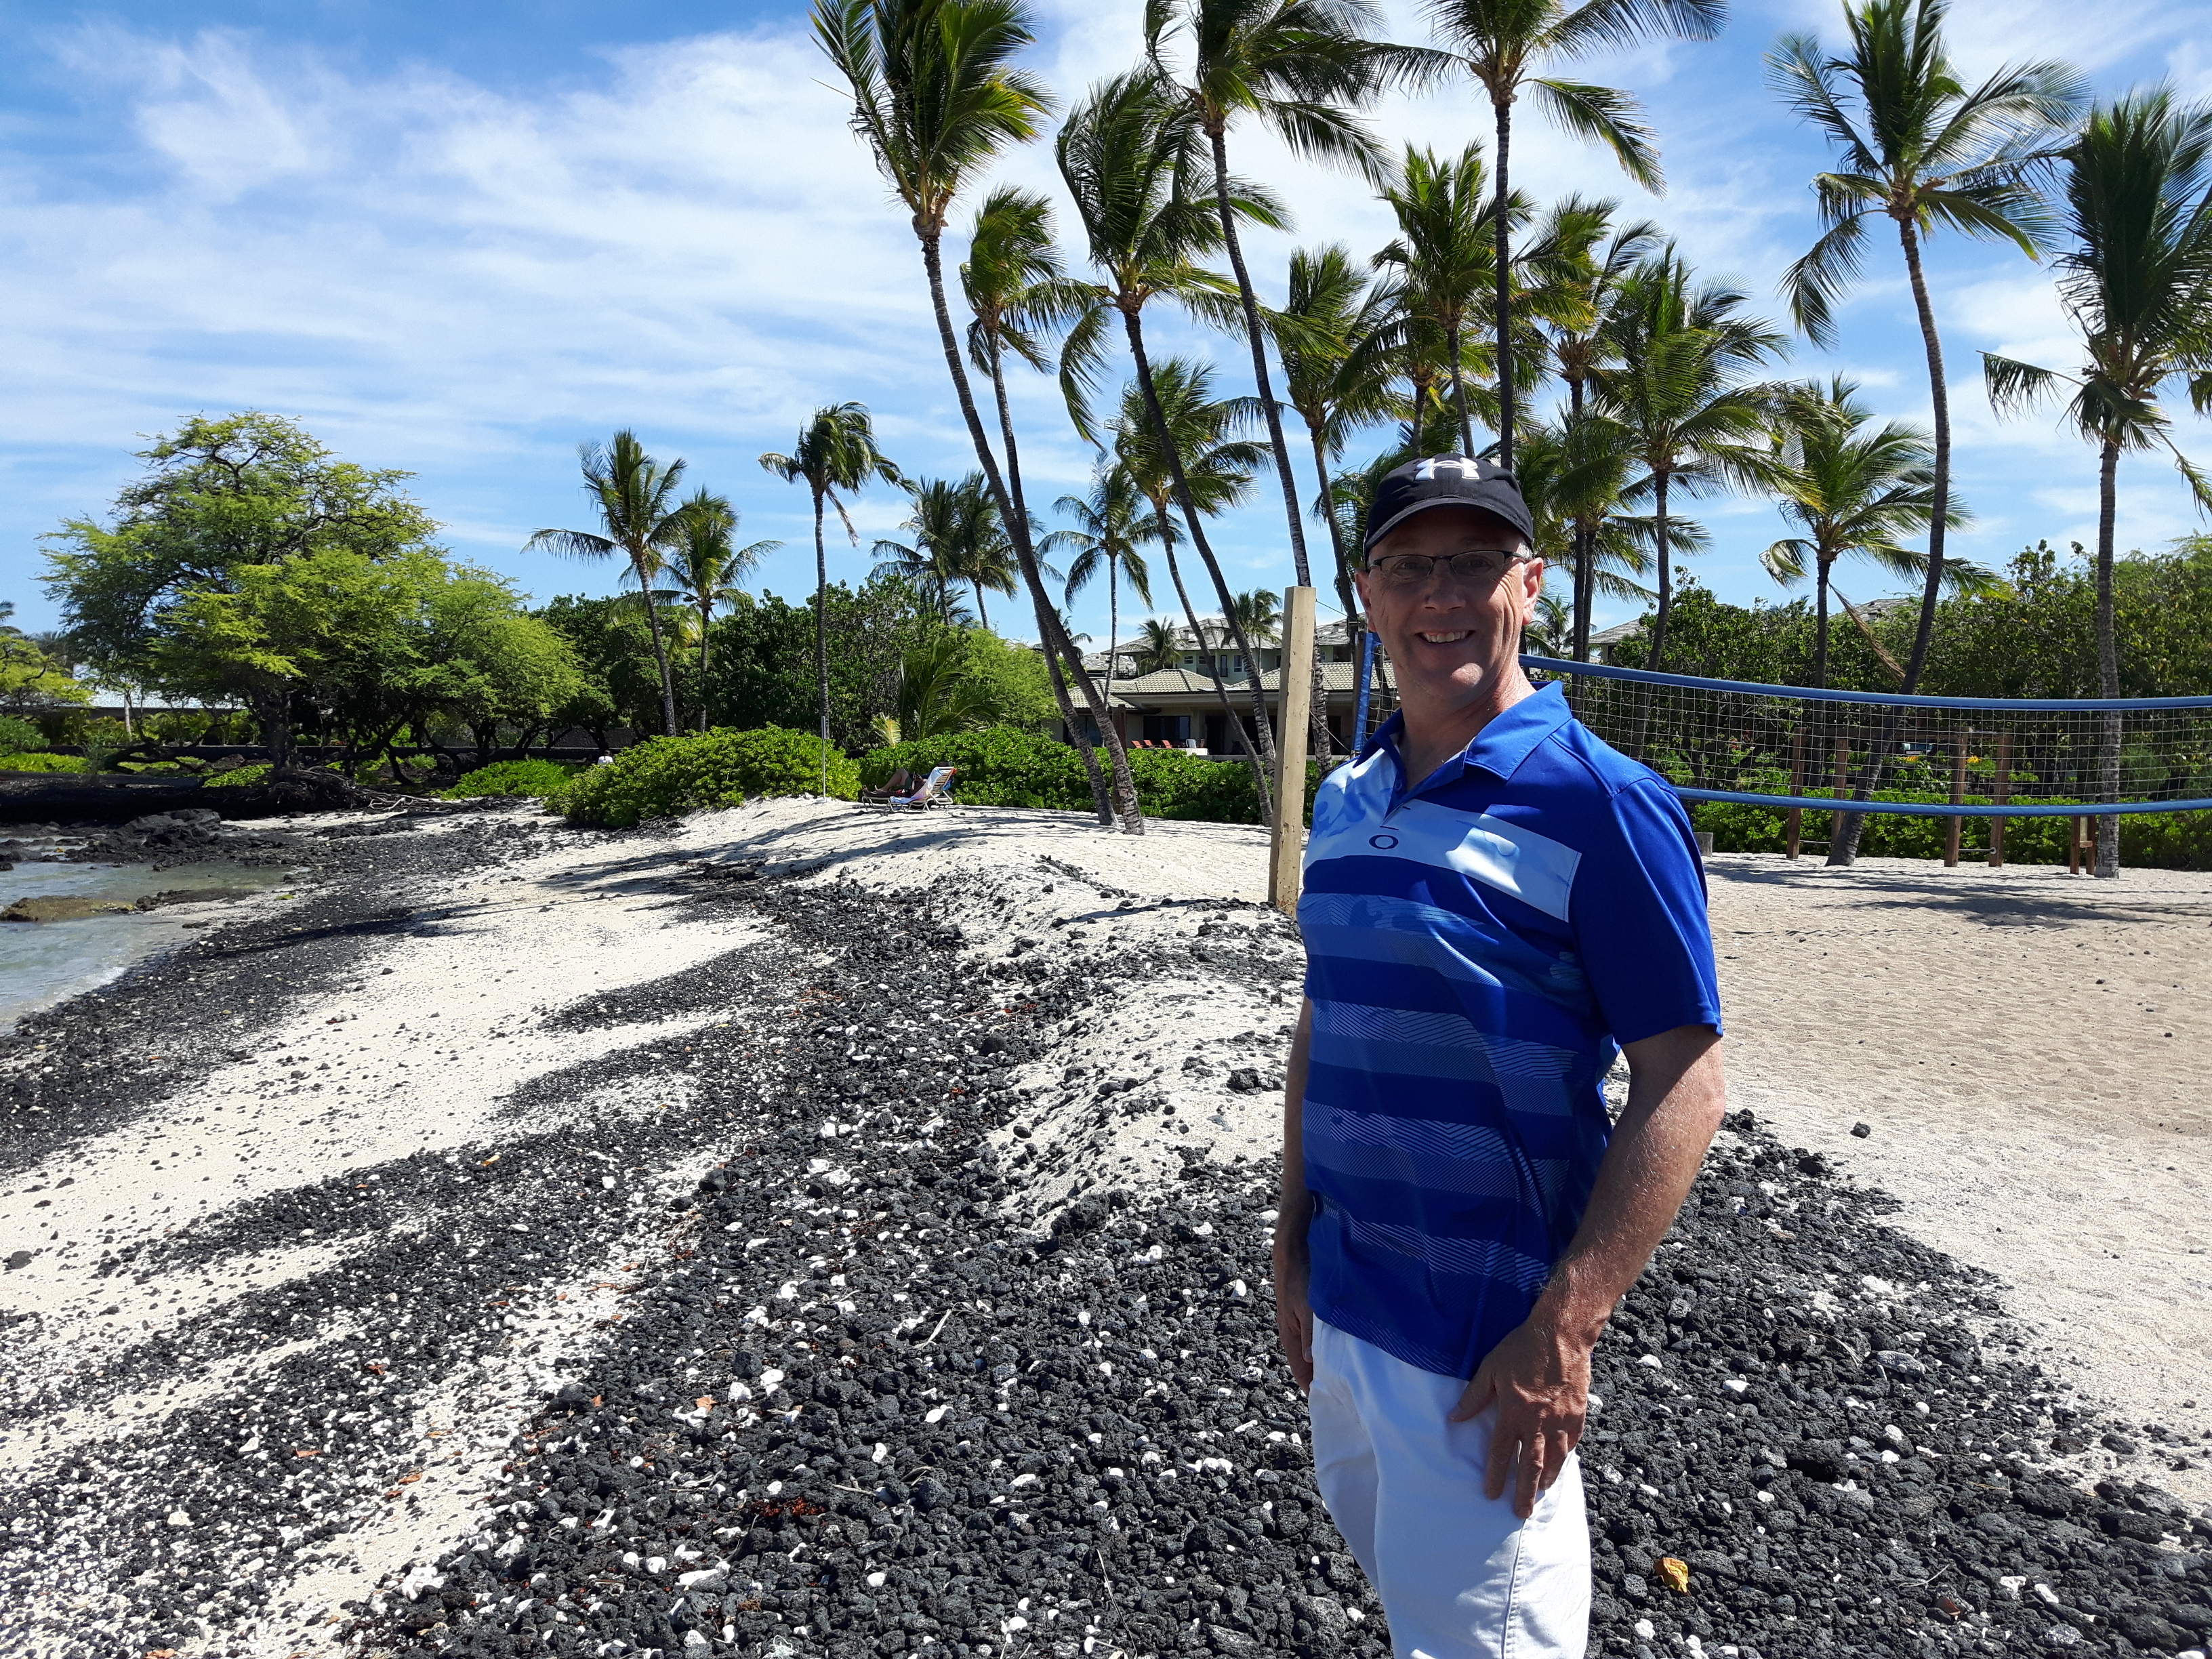 At Waikoloa, Hawaii in summer 2017 (photo courtesy of Dean Neville)